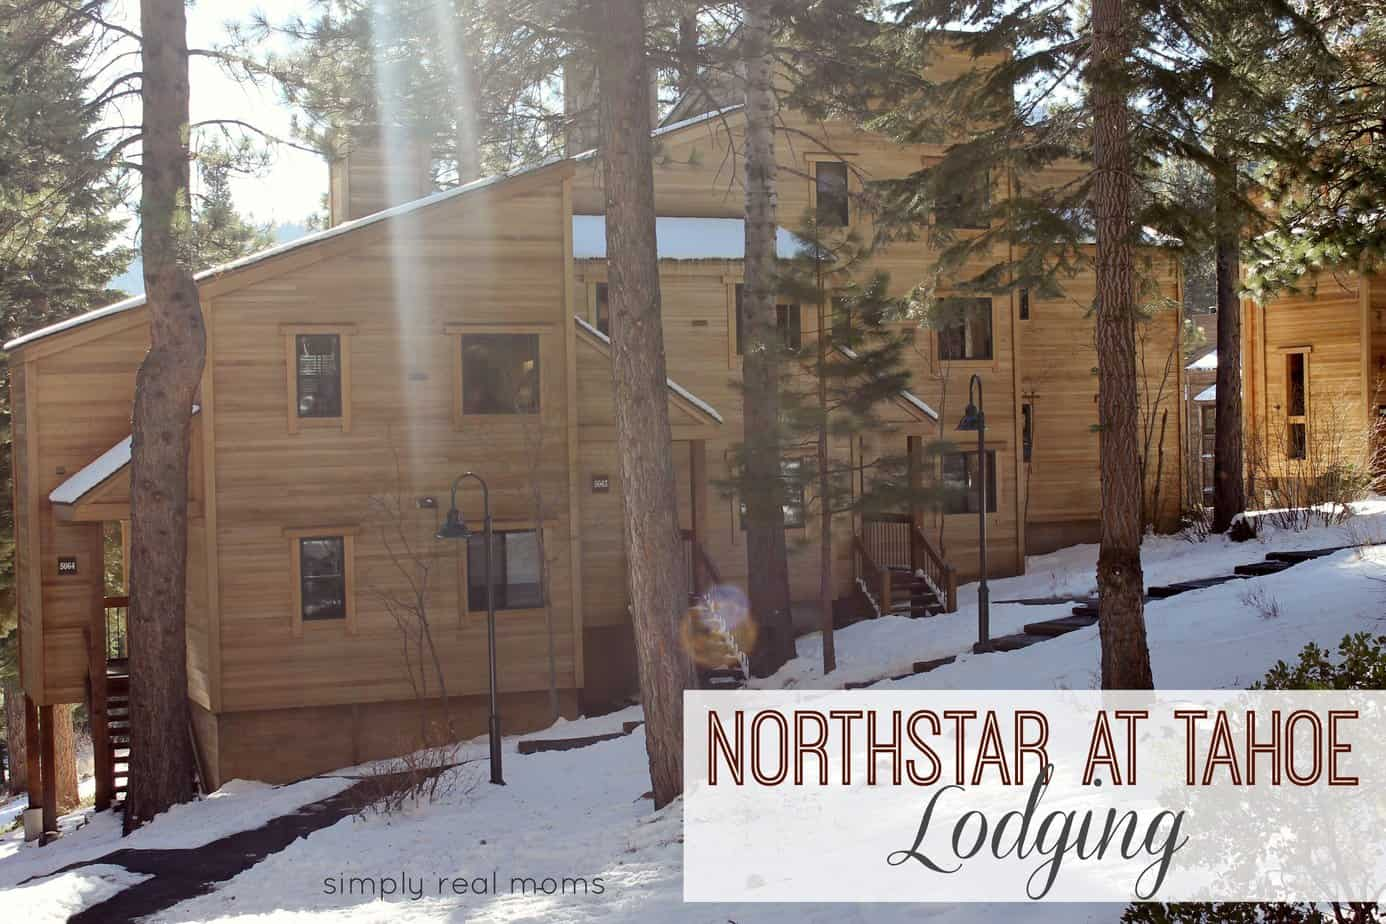 Northstar at Tahoe Lodging 8